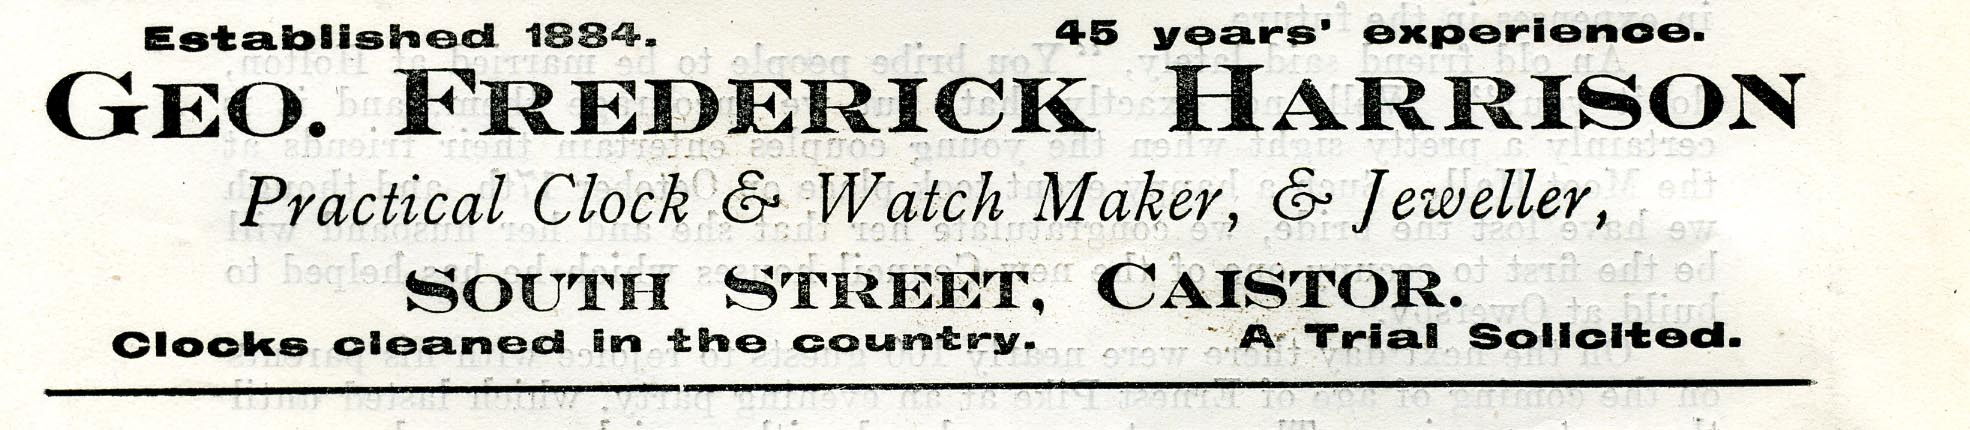 Advert 1917 approx Geo Fred Harrison.jpg